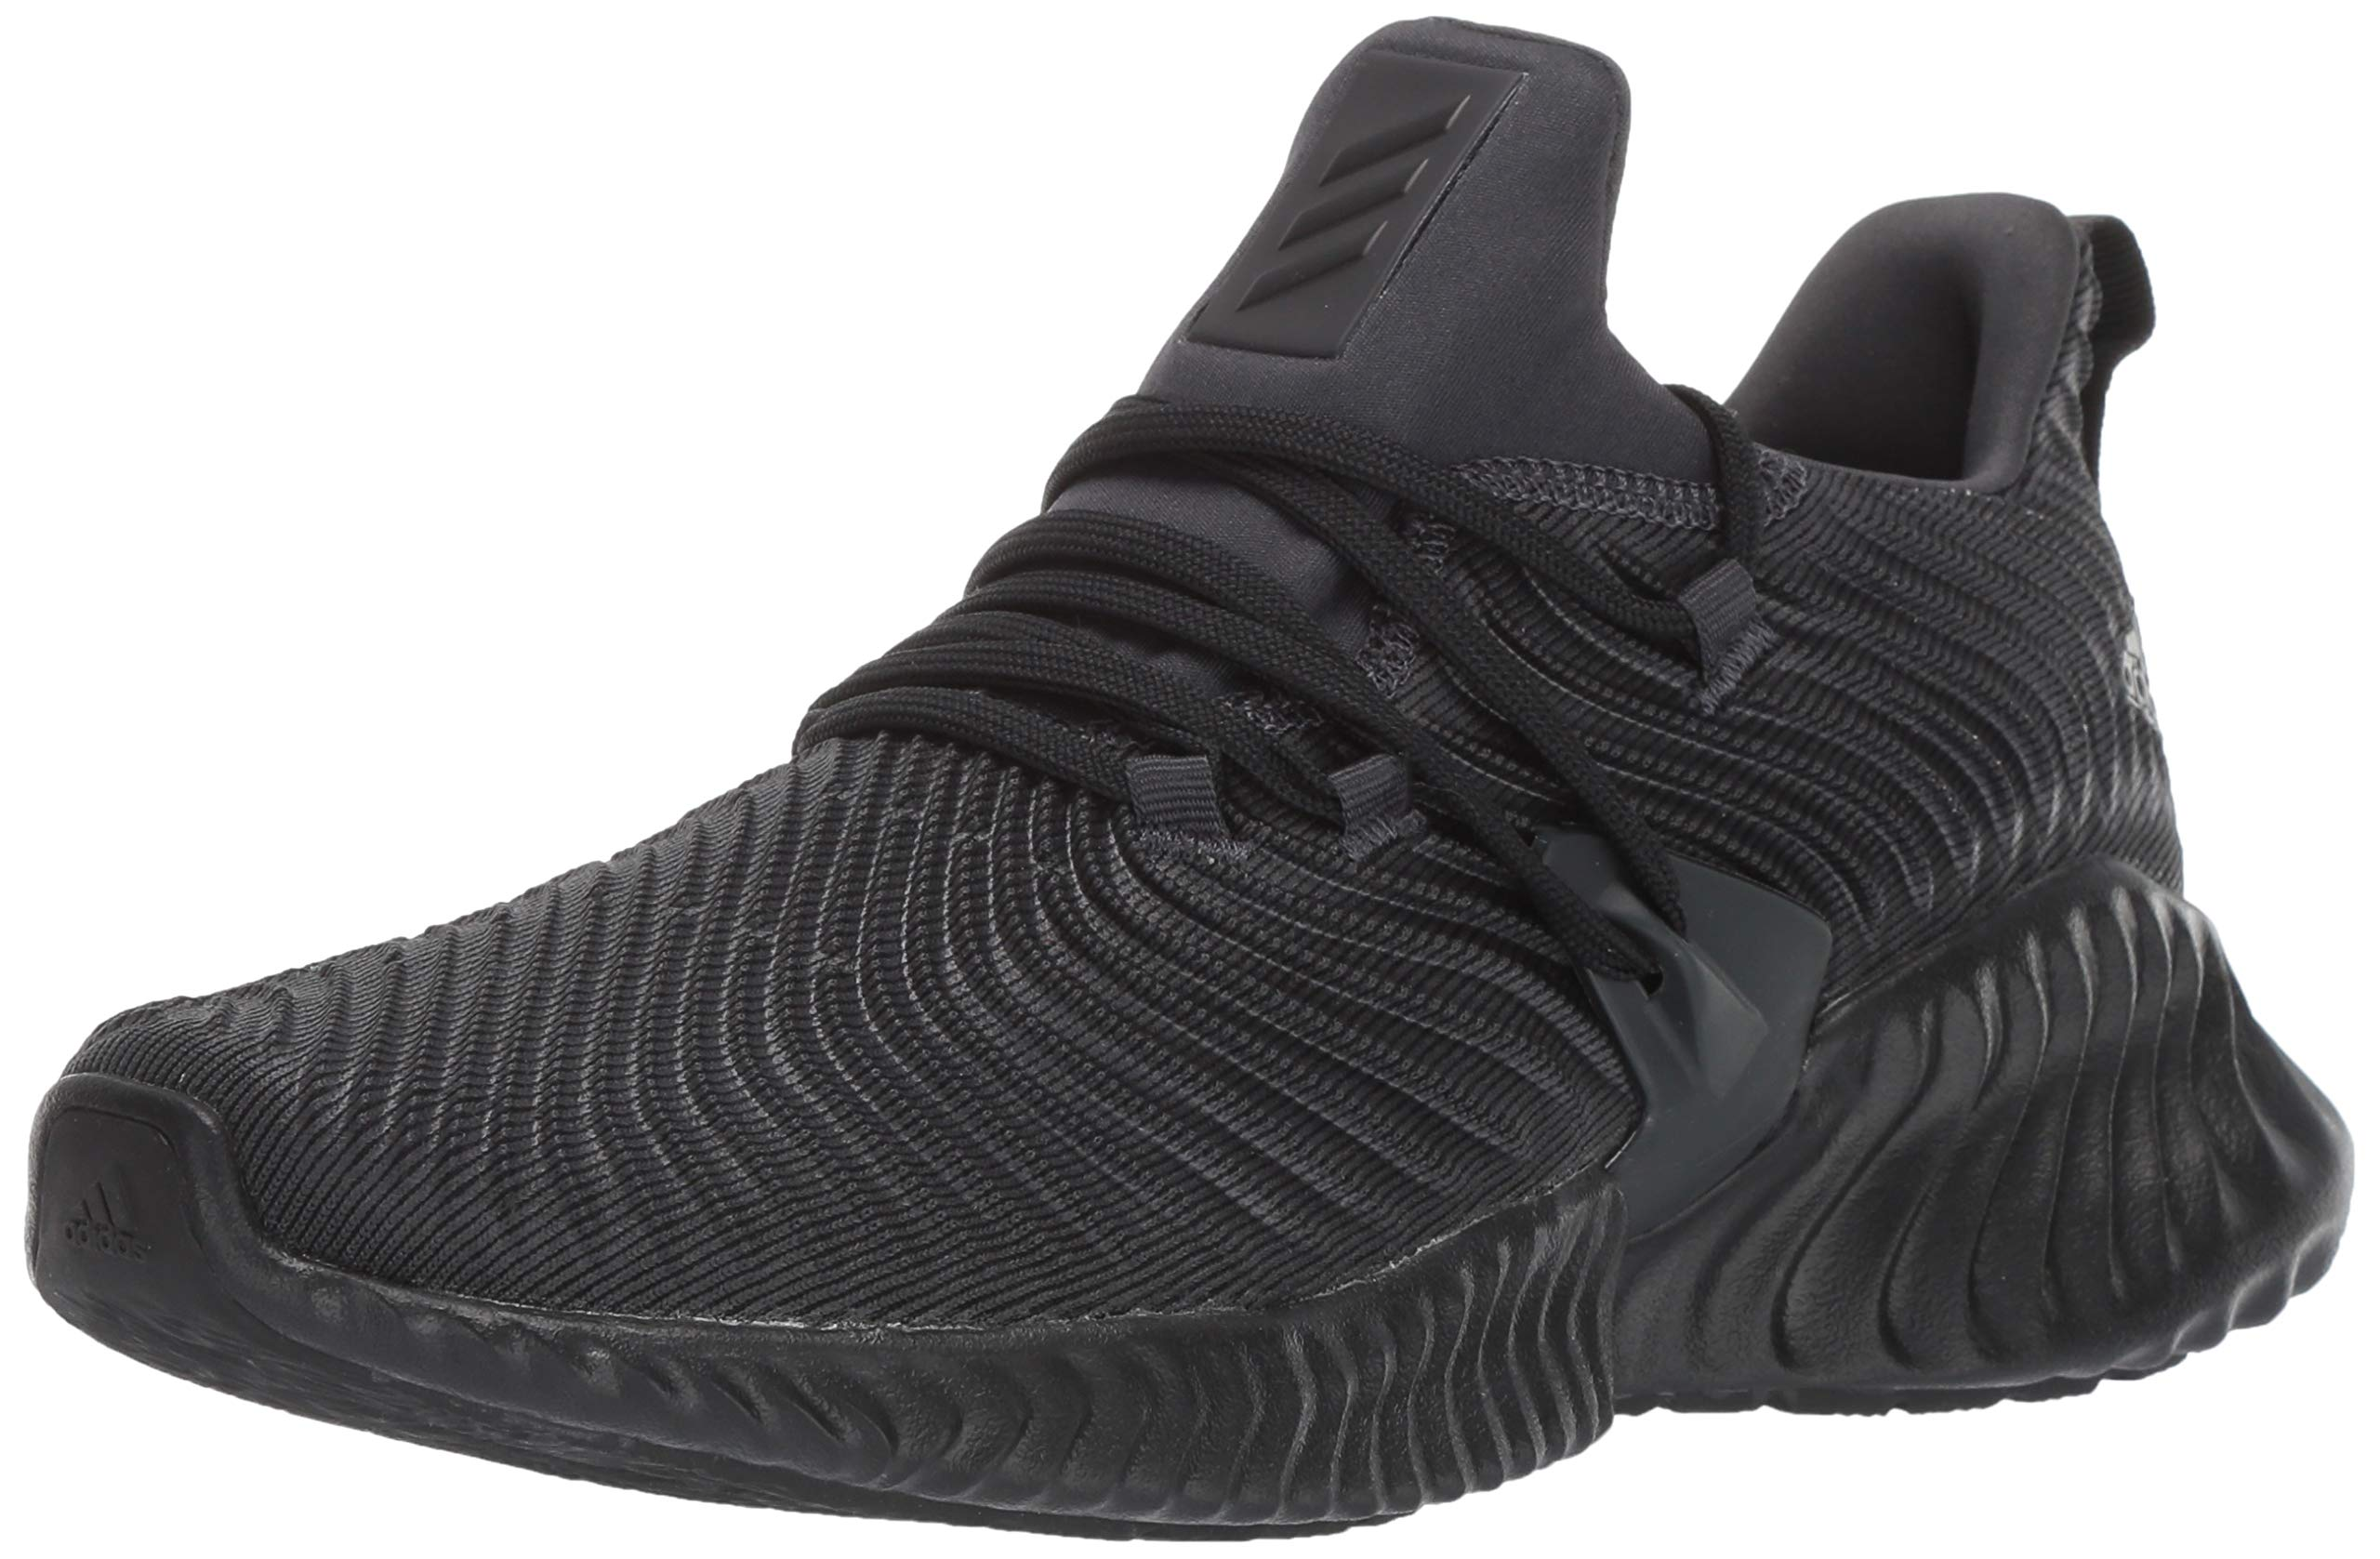 Adidas Kids Alphabounce Instinct, Carbon/Core Black/Carbon, 2 M US Little Kid by adidas (Image #1)